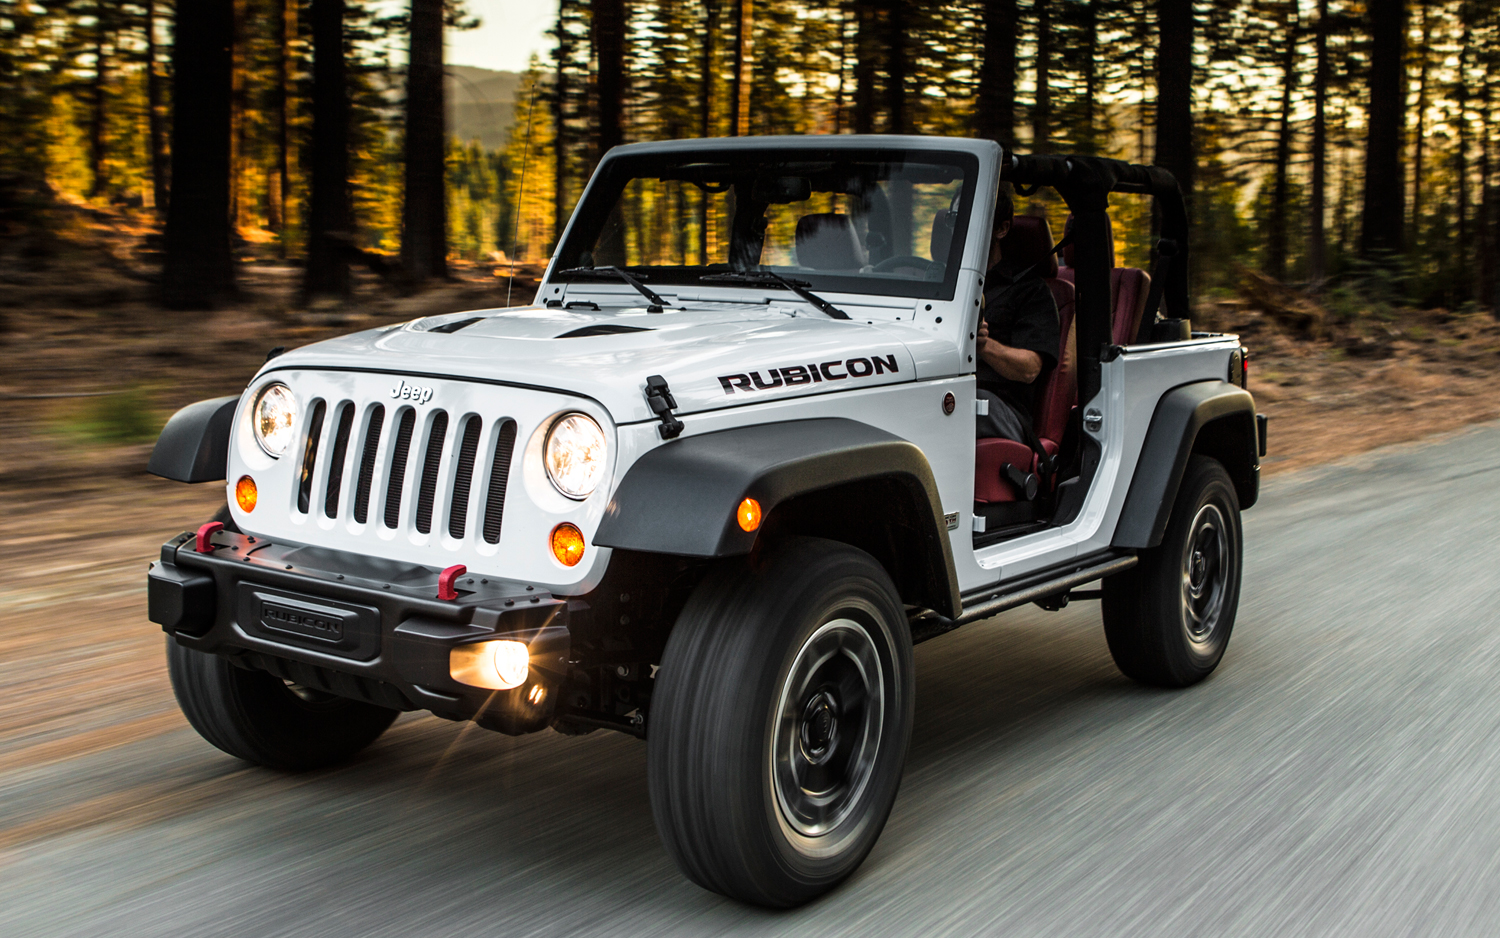 Jeep Wrangler Mobil Jeep Wrangler 2 Door 1500x938 Download Hd Wallpaper Wallpapertip